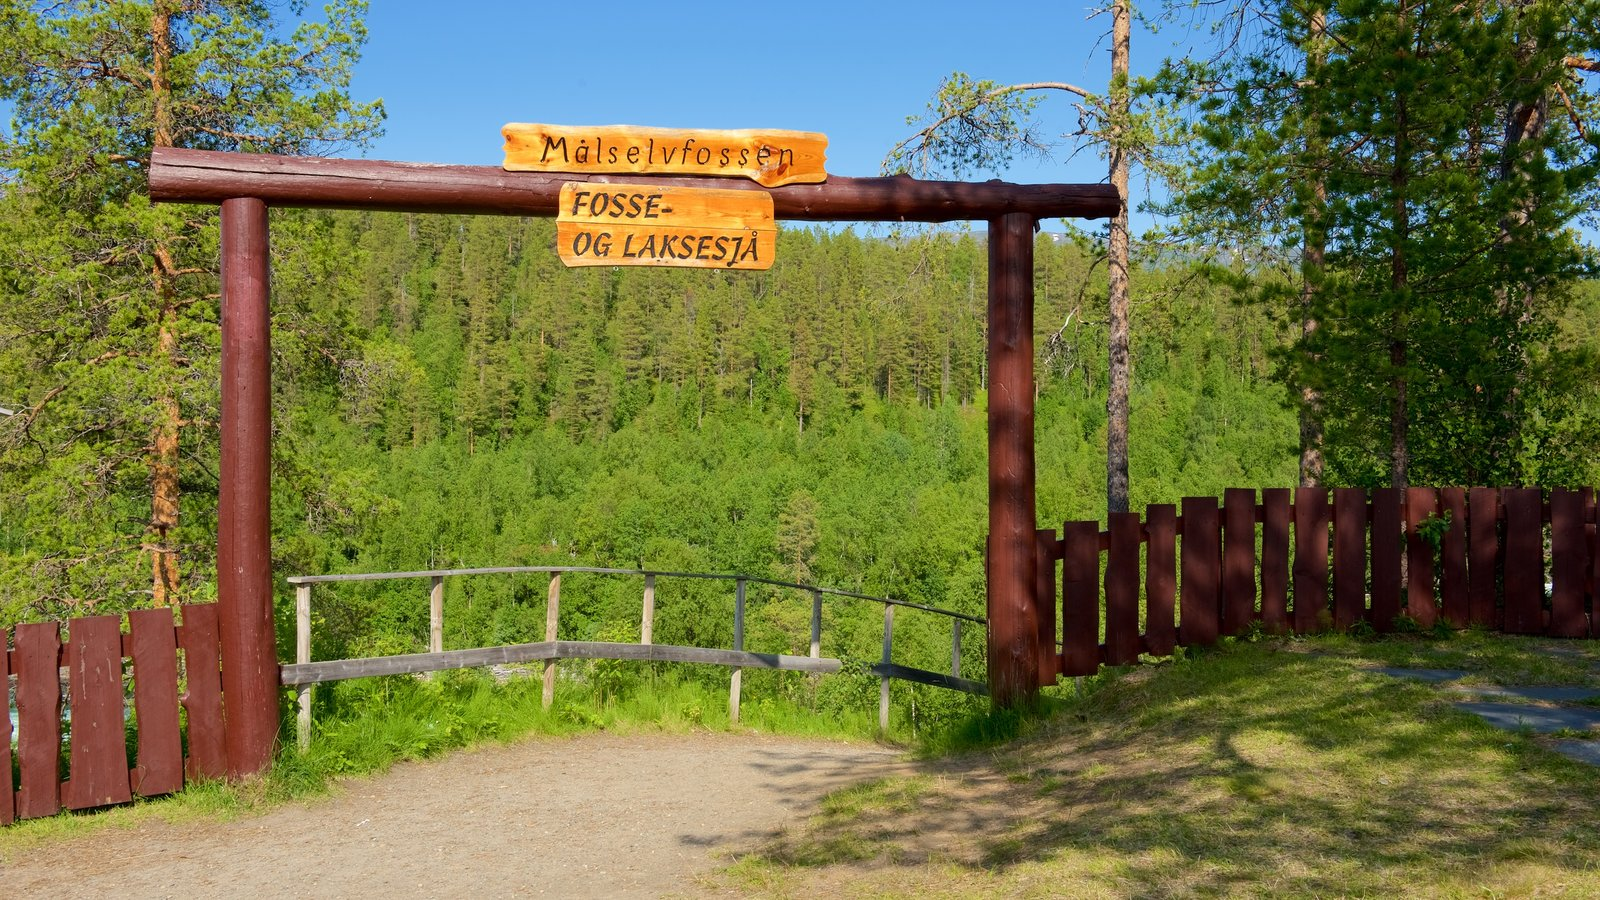 Maalselvfossen Waterfall which includes signage and forests